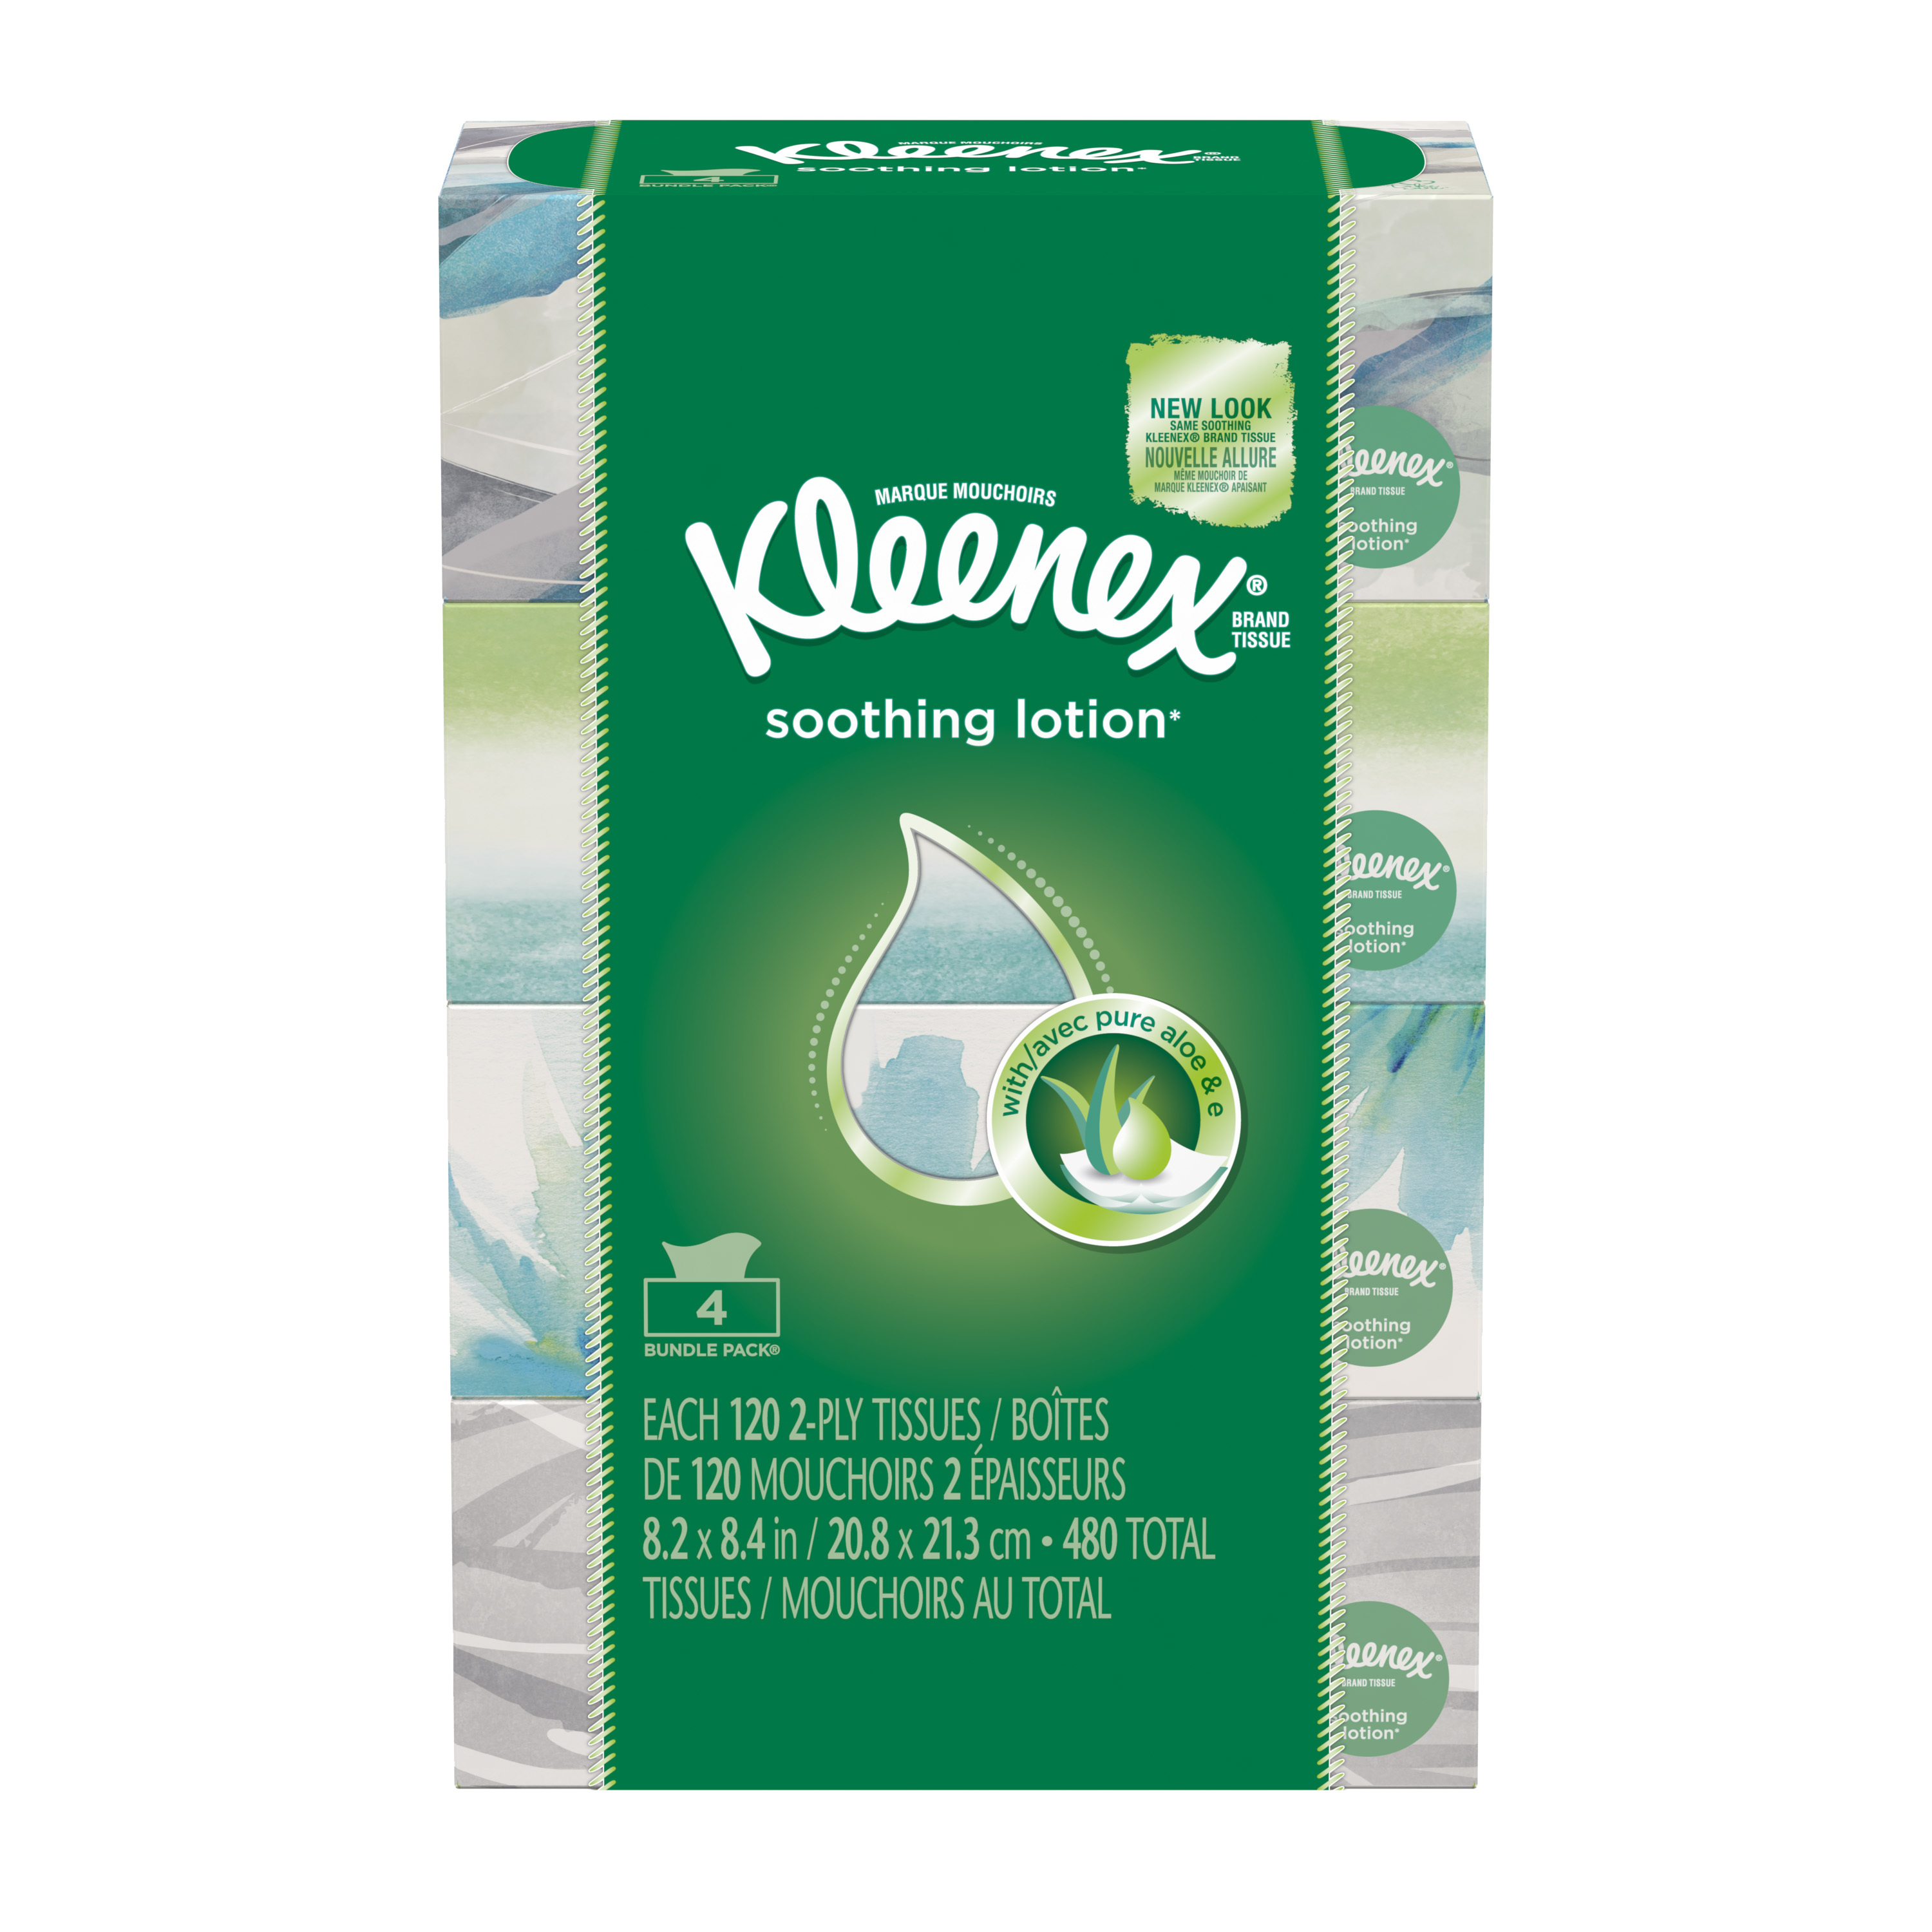 Kleenex Facial Tissues with Lotion, 120 Tissues per Flat Box, 4 Pack